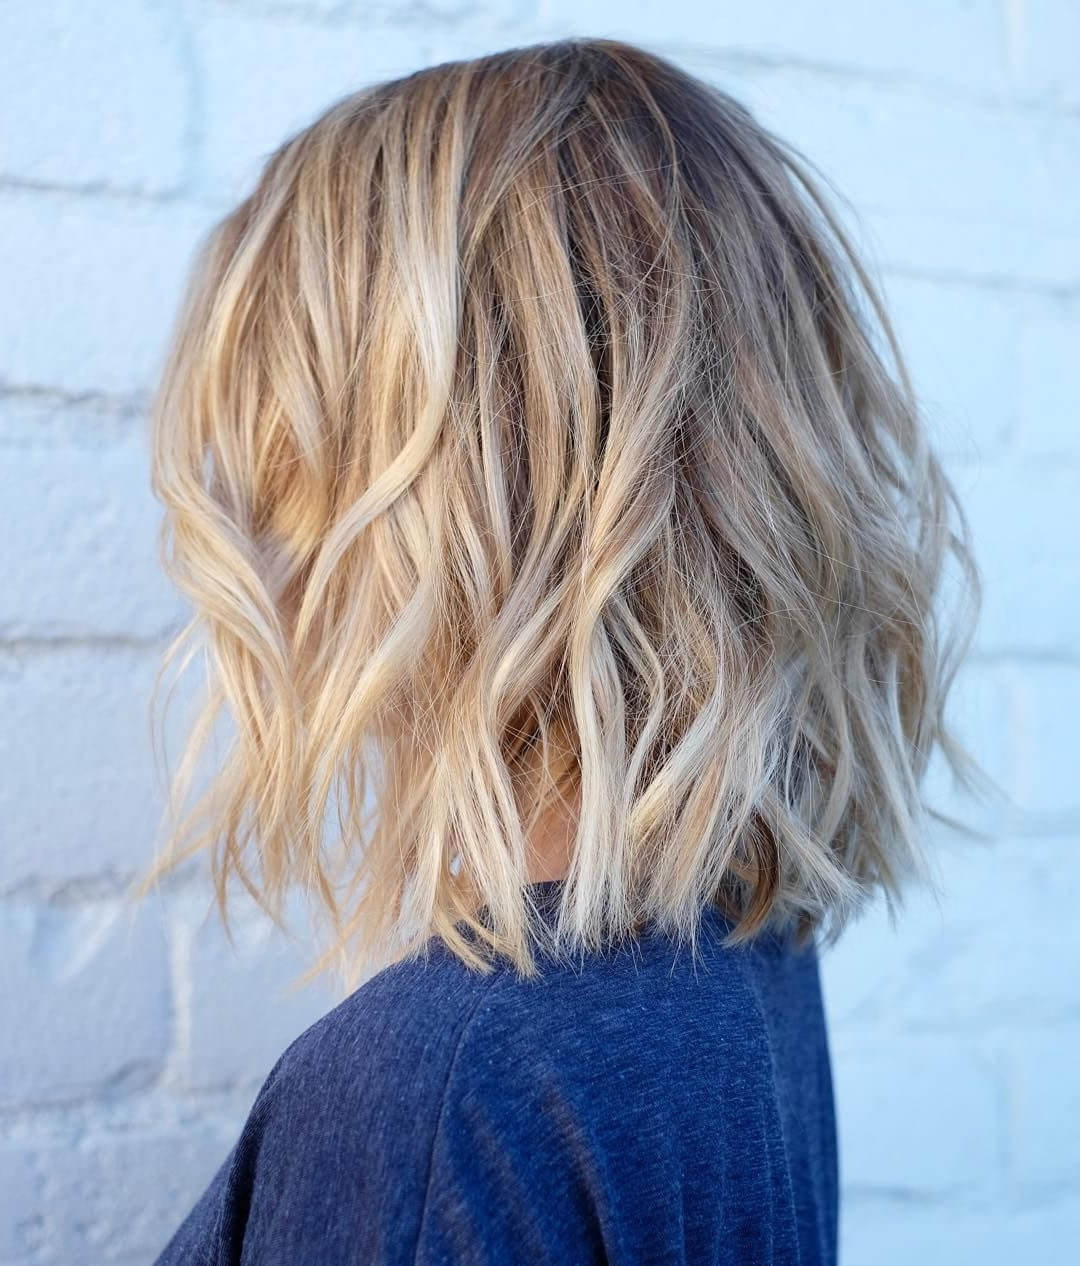 50 Fresh Short Blonde Hair Ideas To Update Your Style In 2018 Intended For Fashionable Dirty Blonde Bob Hairstyles (View 5 of 20)